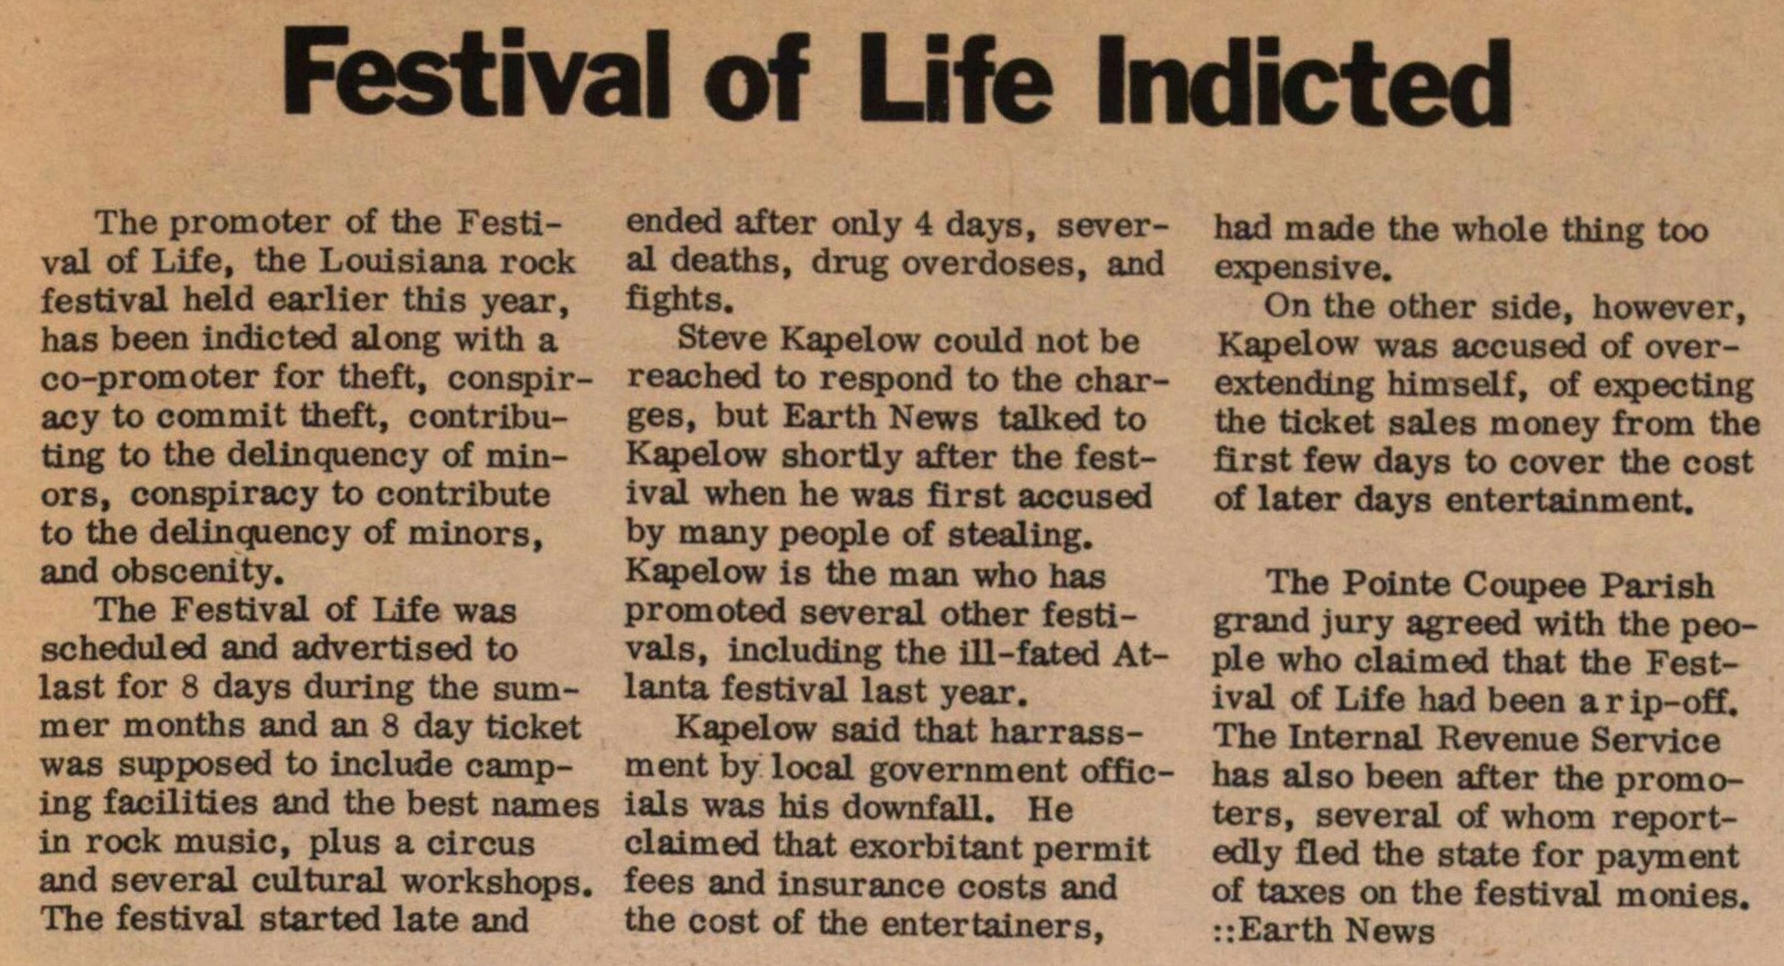 Festival Of Life Indicted image